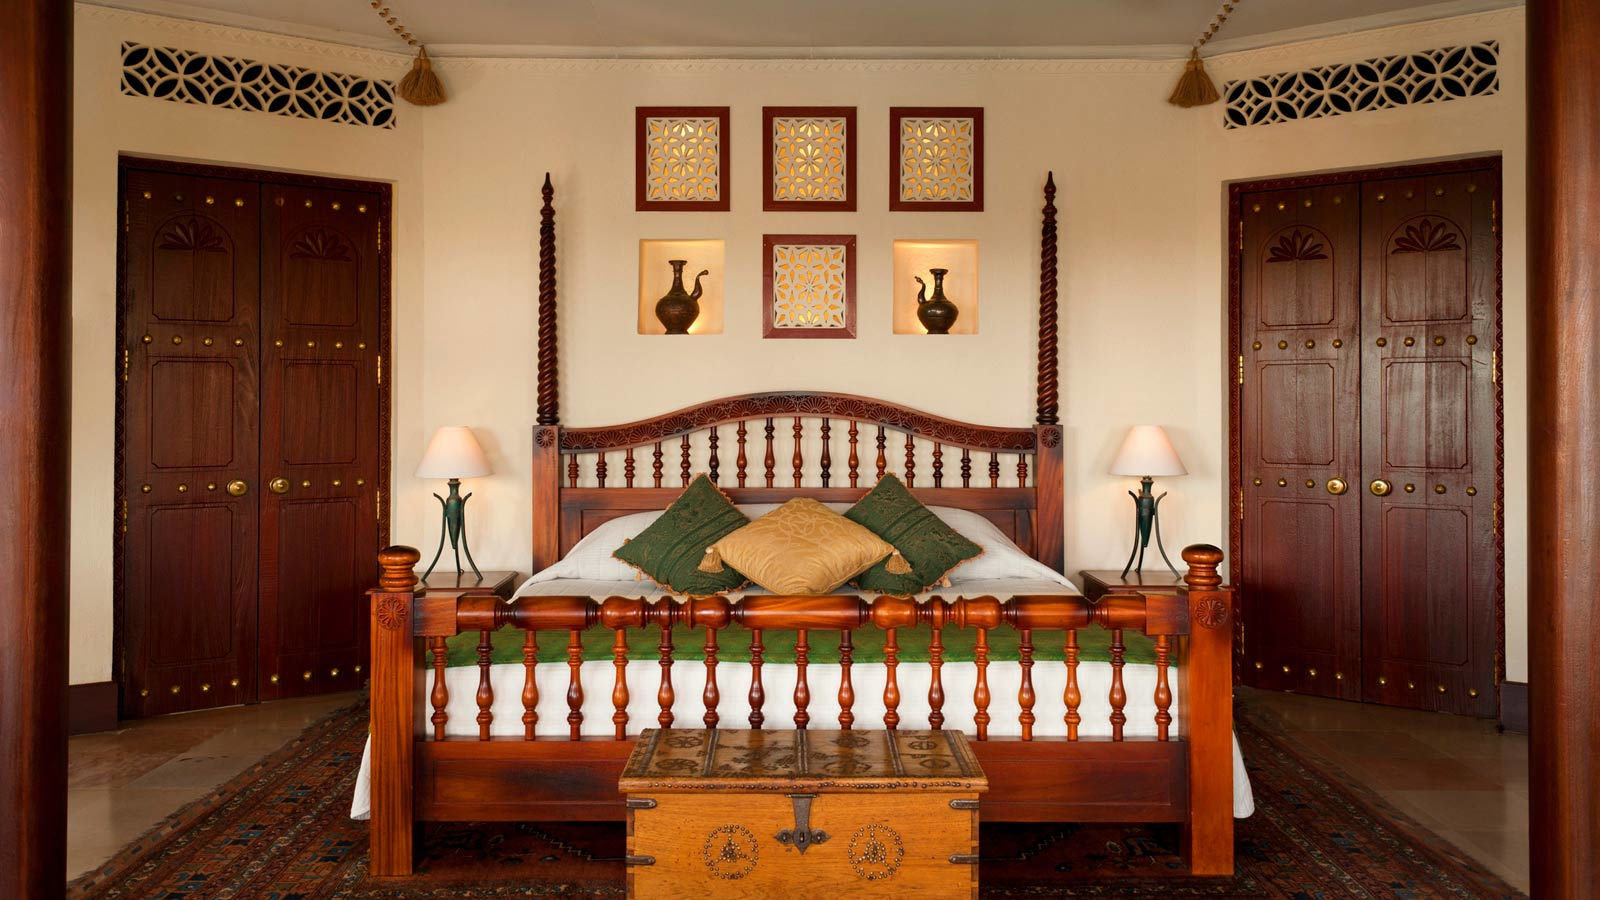 Dubai Hotels Luxury Travel Middle East bed frame home Bedroom product